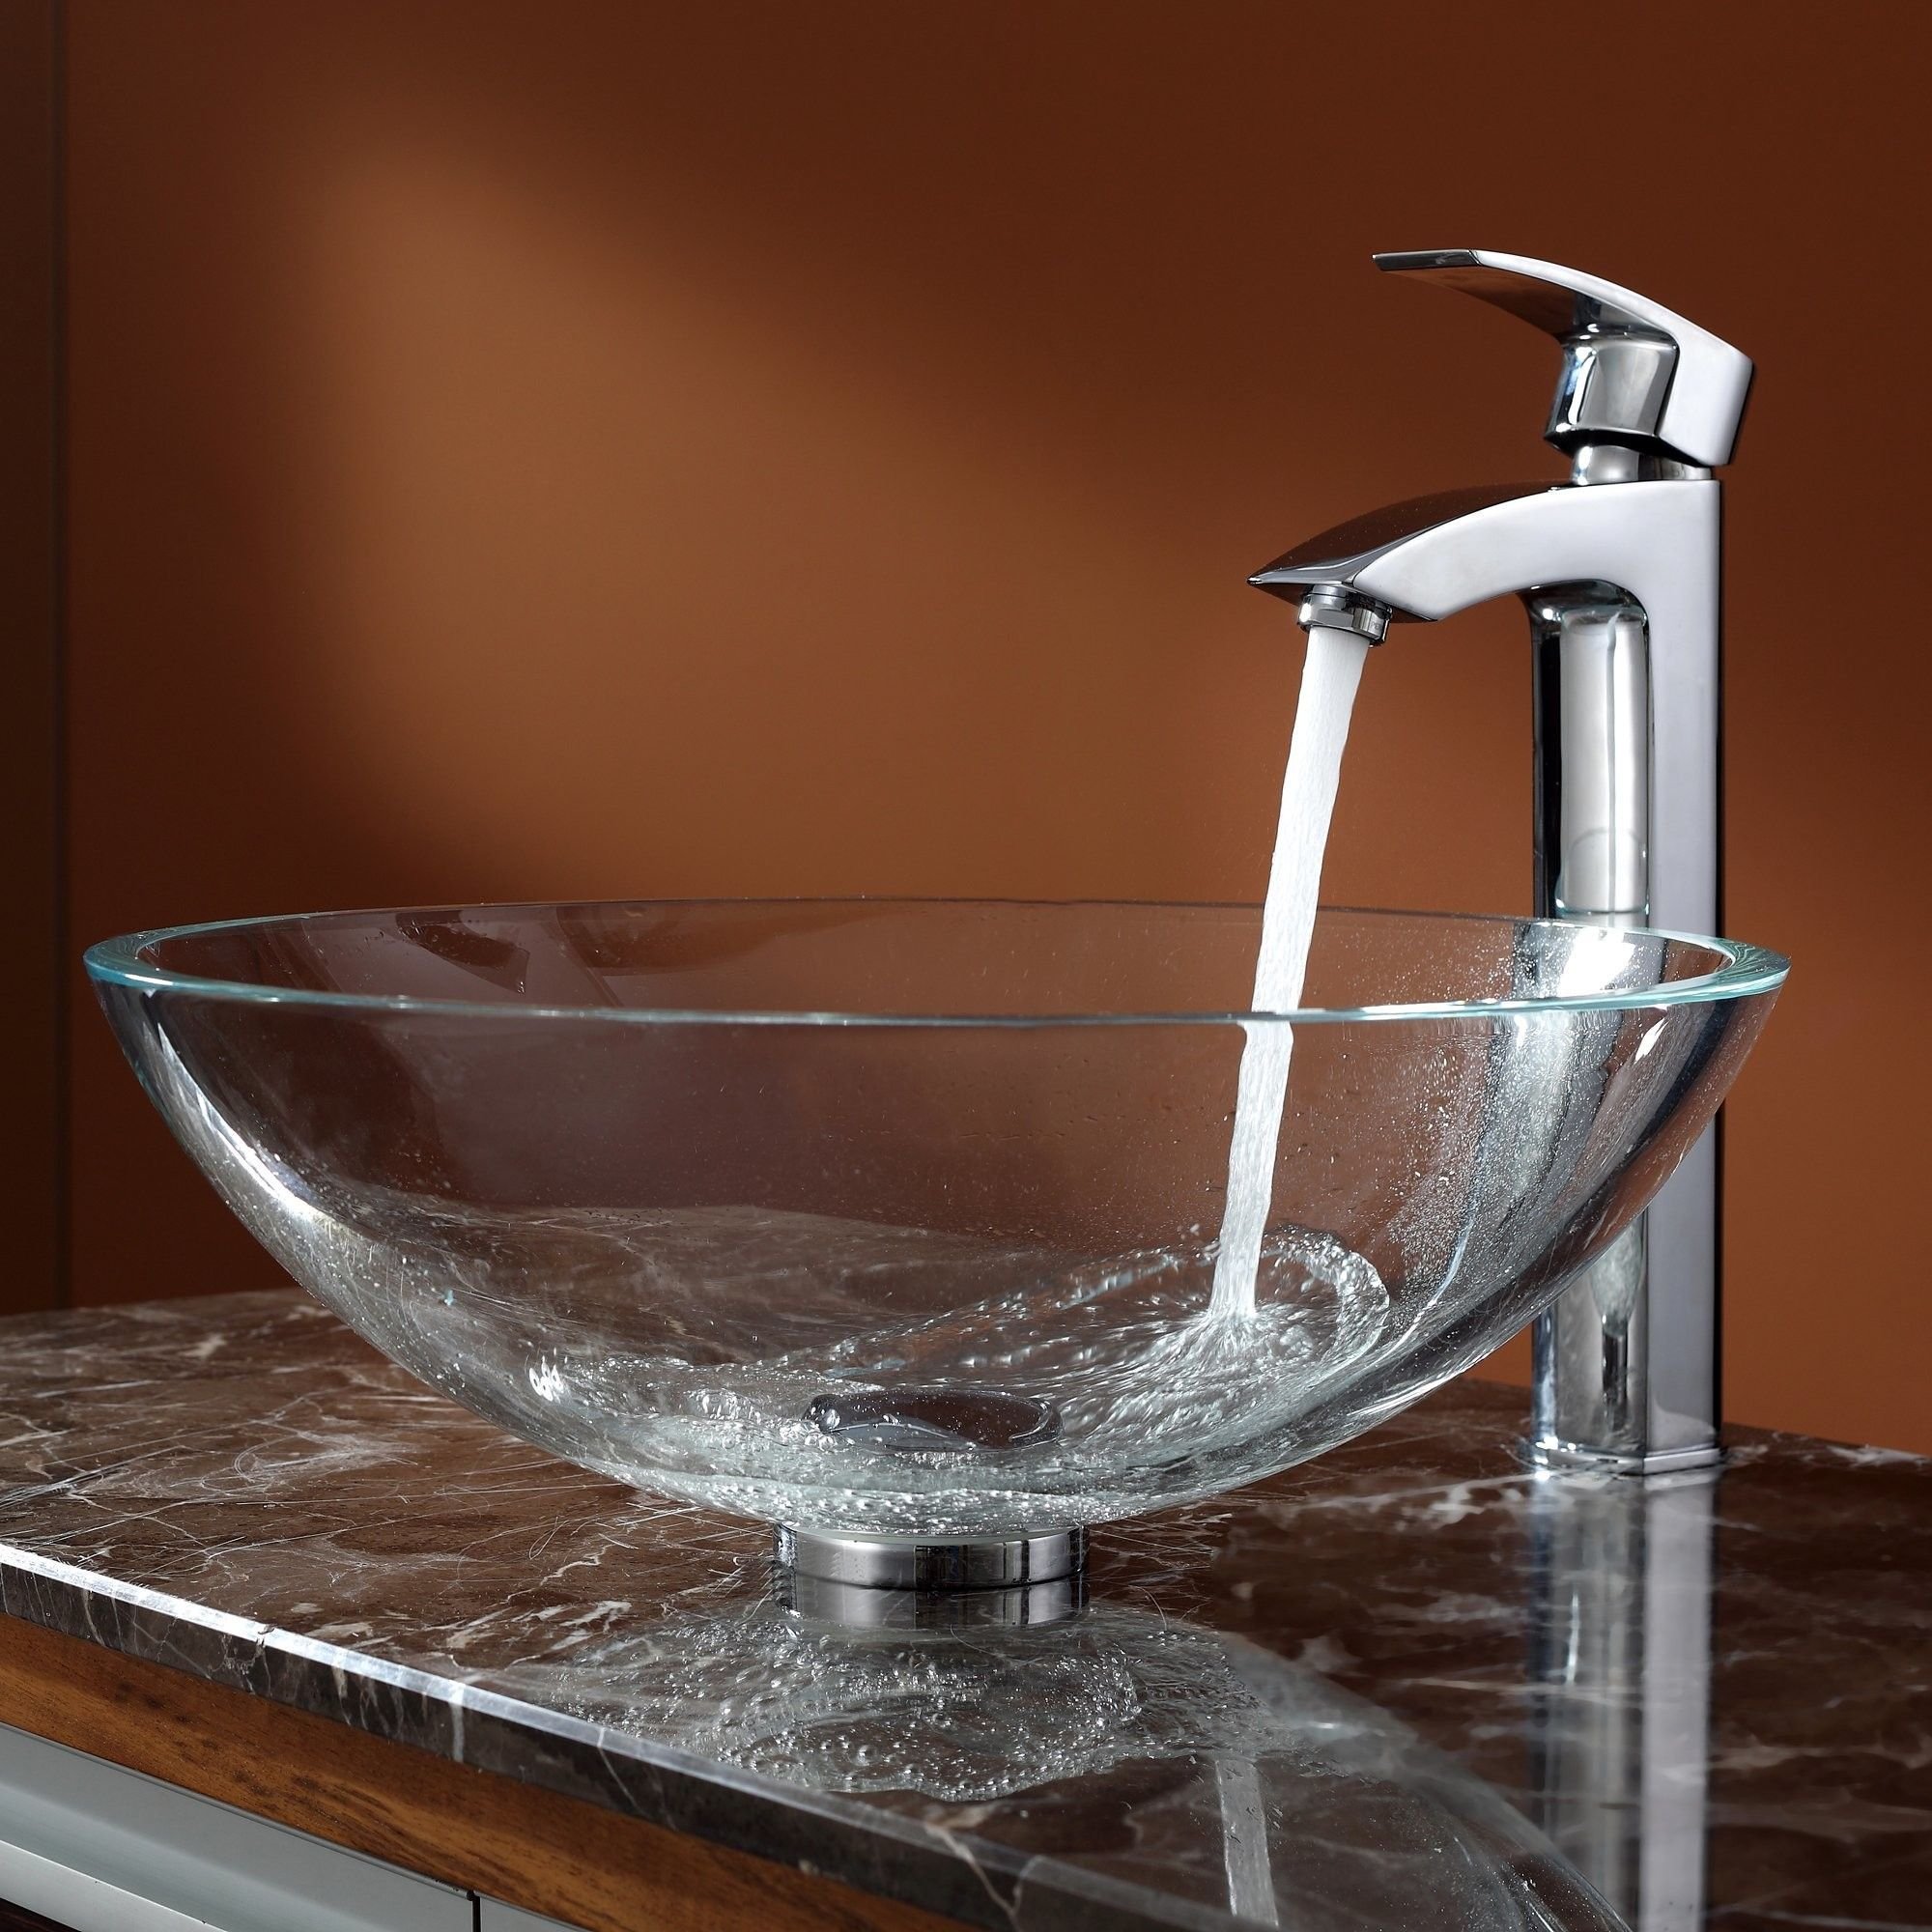 Features:  -Faucet: All mounting hardware and hot/cold waterlines are included.  -Add a touch of elegance to your bathroom with a glass sink combo from Kraus.  -Stylish crystal clear glass sink and Vi